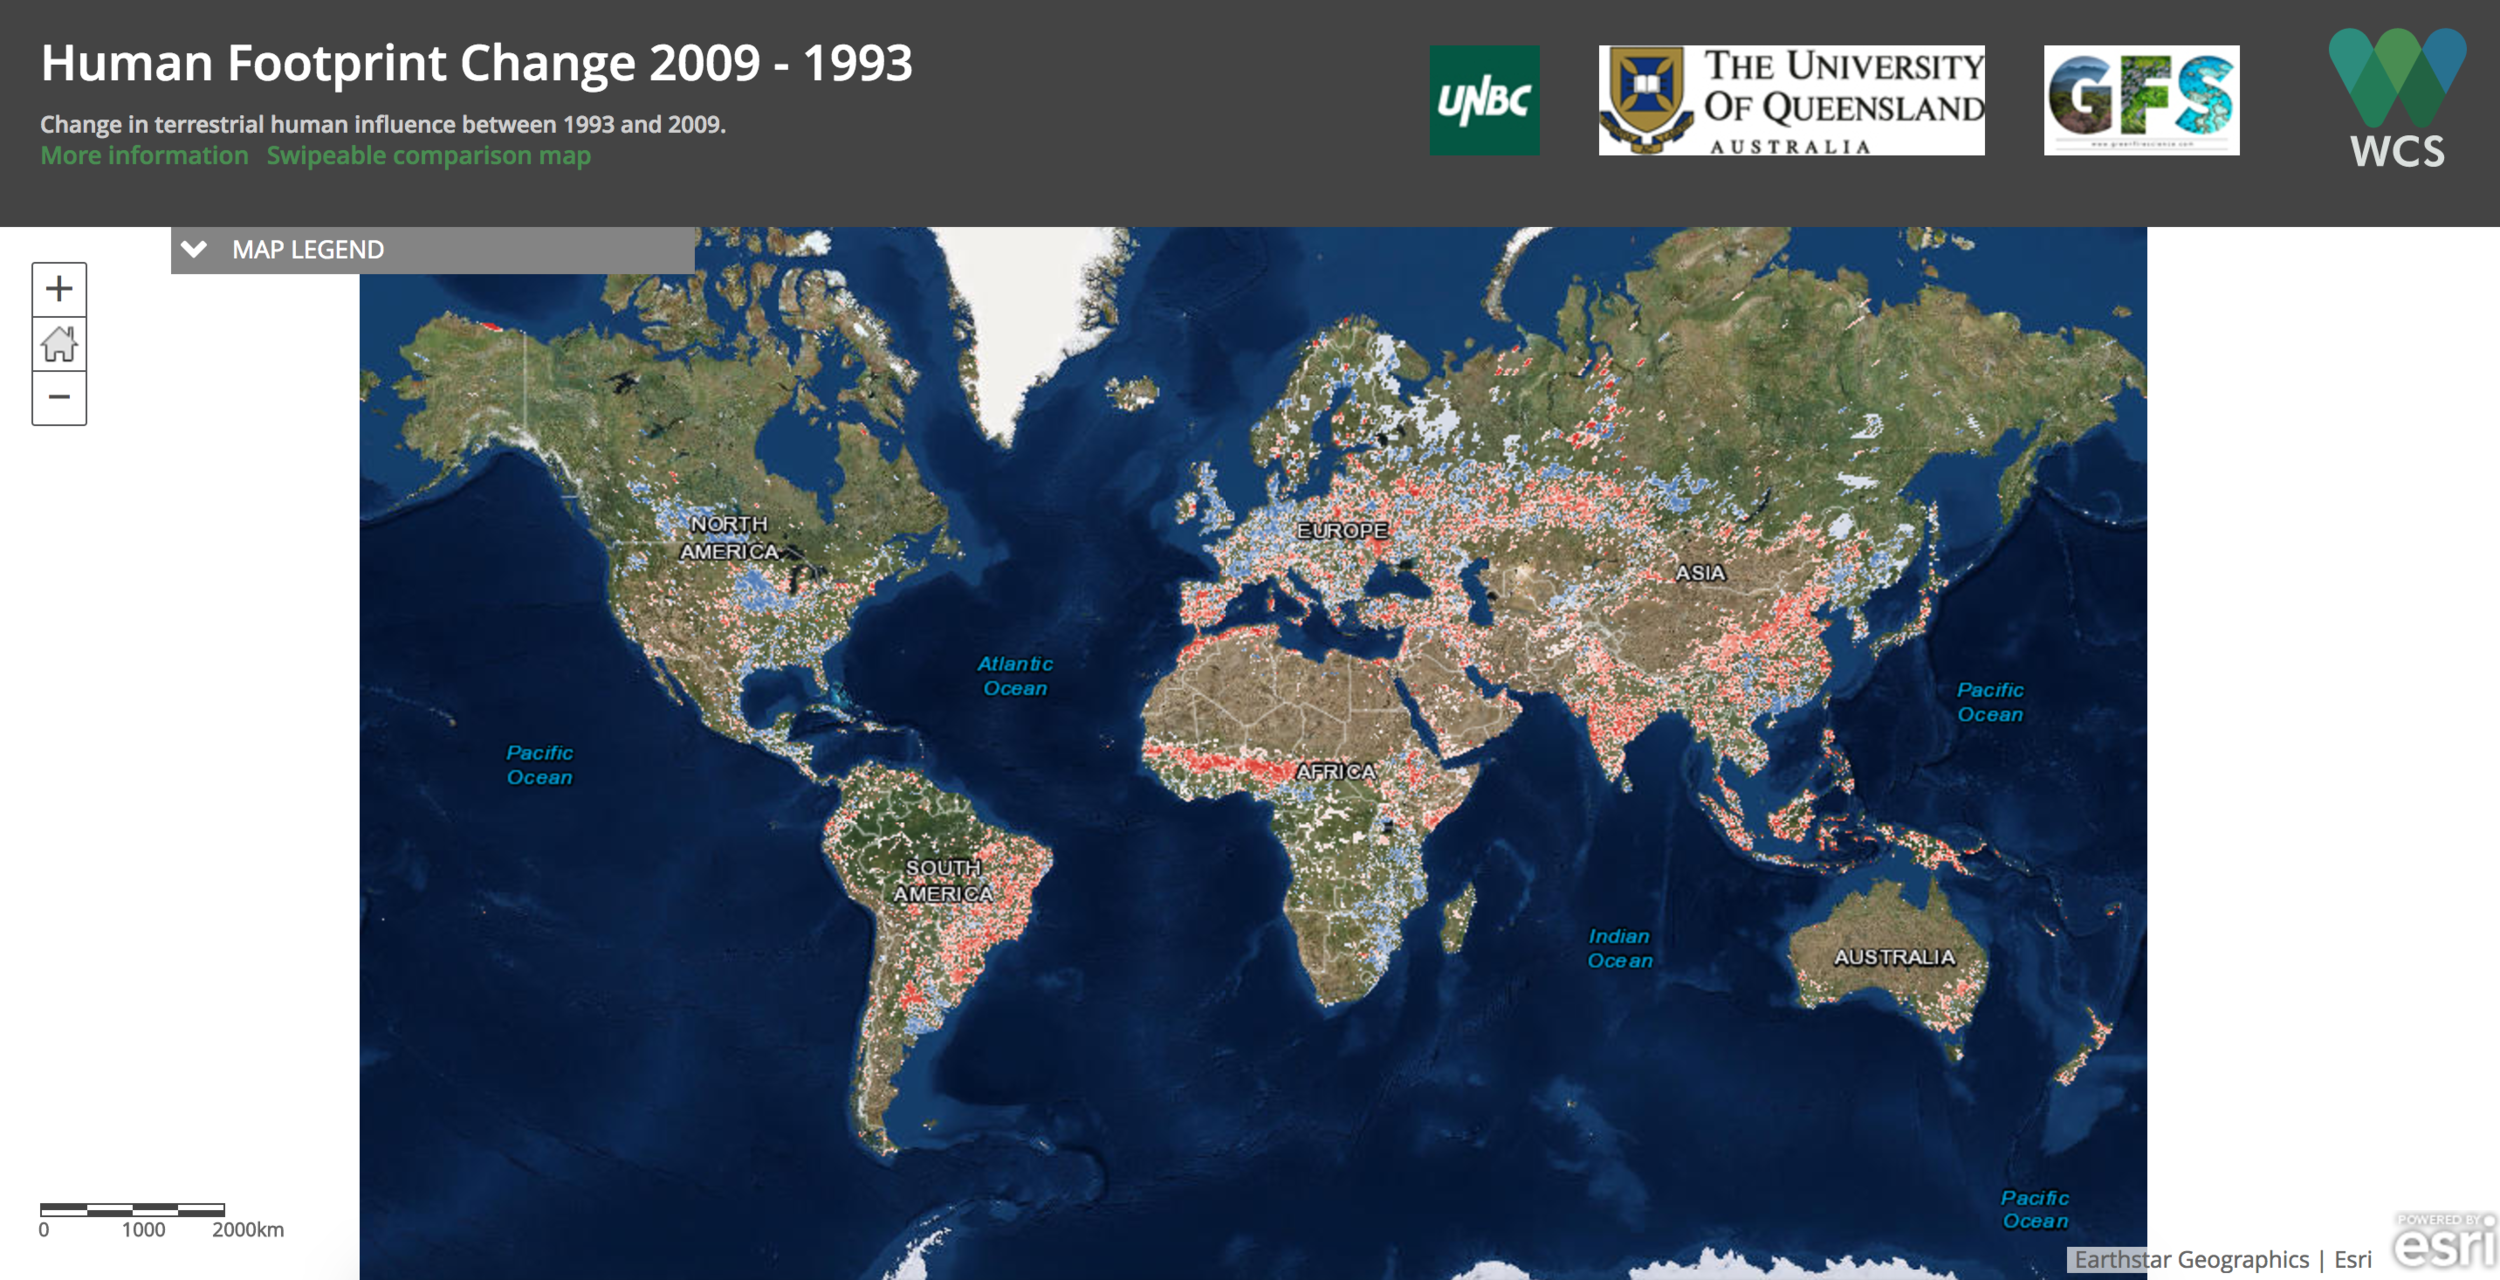 The human footprint map measures the cumulative impact of direct pressures on nature from human activities. Visit at  http://wcshumanfootprint.org